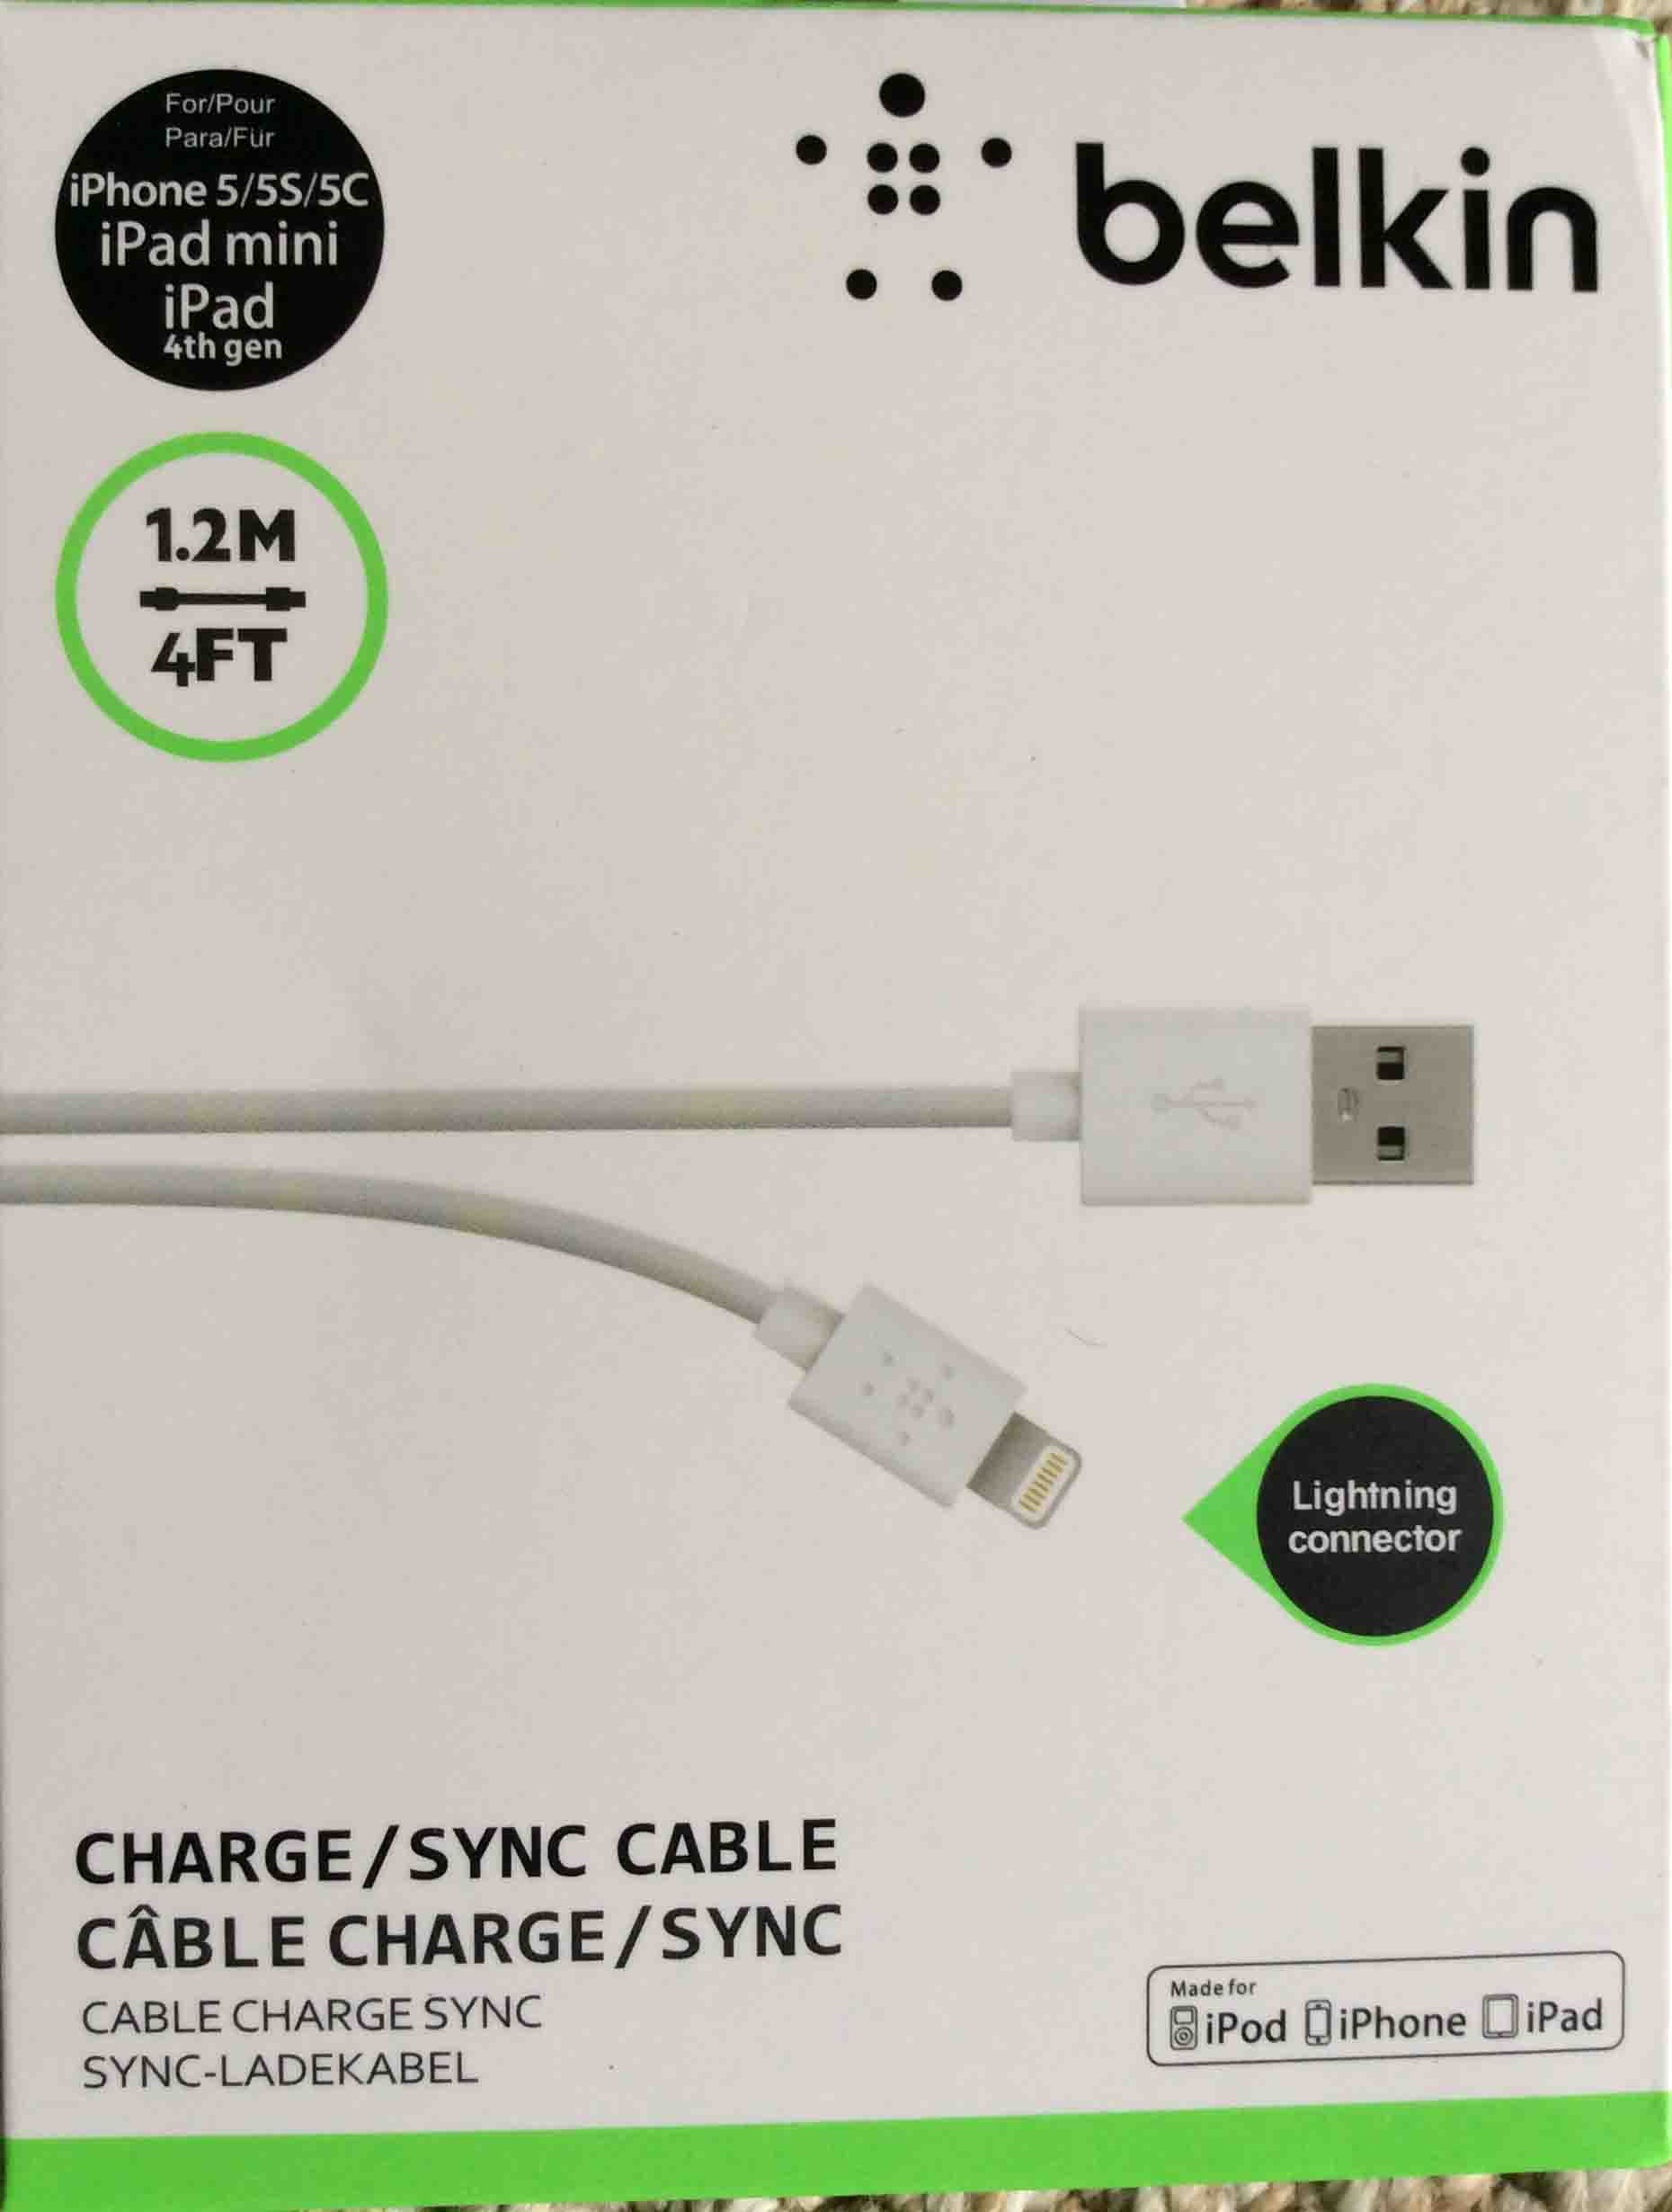 Belkin Lightning Usb Cable 12m 4 Ft Review Toms Tek Stop Kabel Charger Data 2 In 1 Micro Iphone 5 Picture Of Front Original Package For The